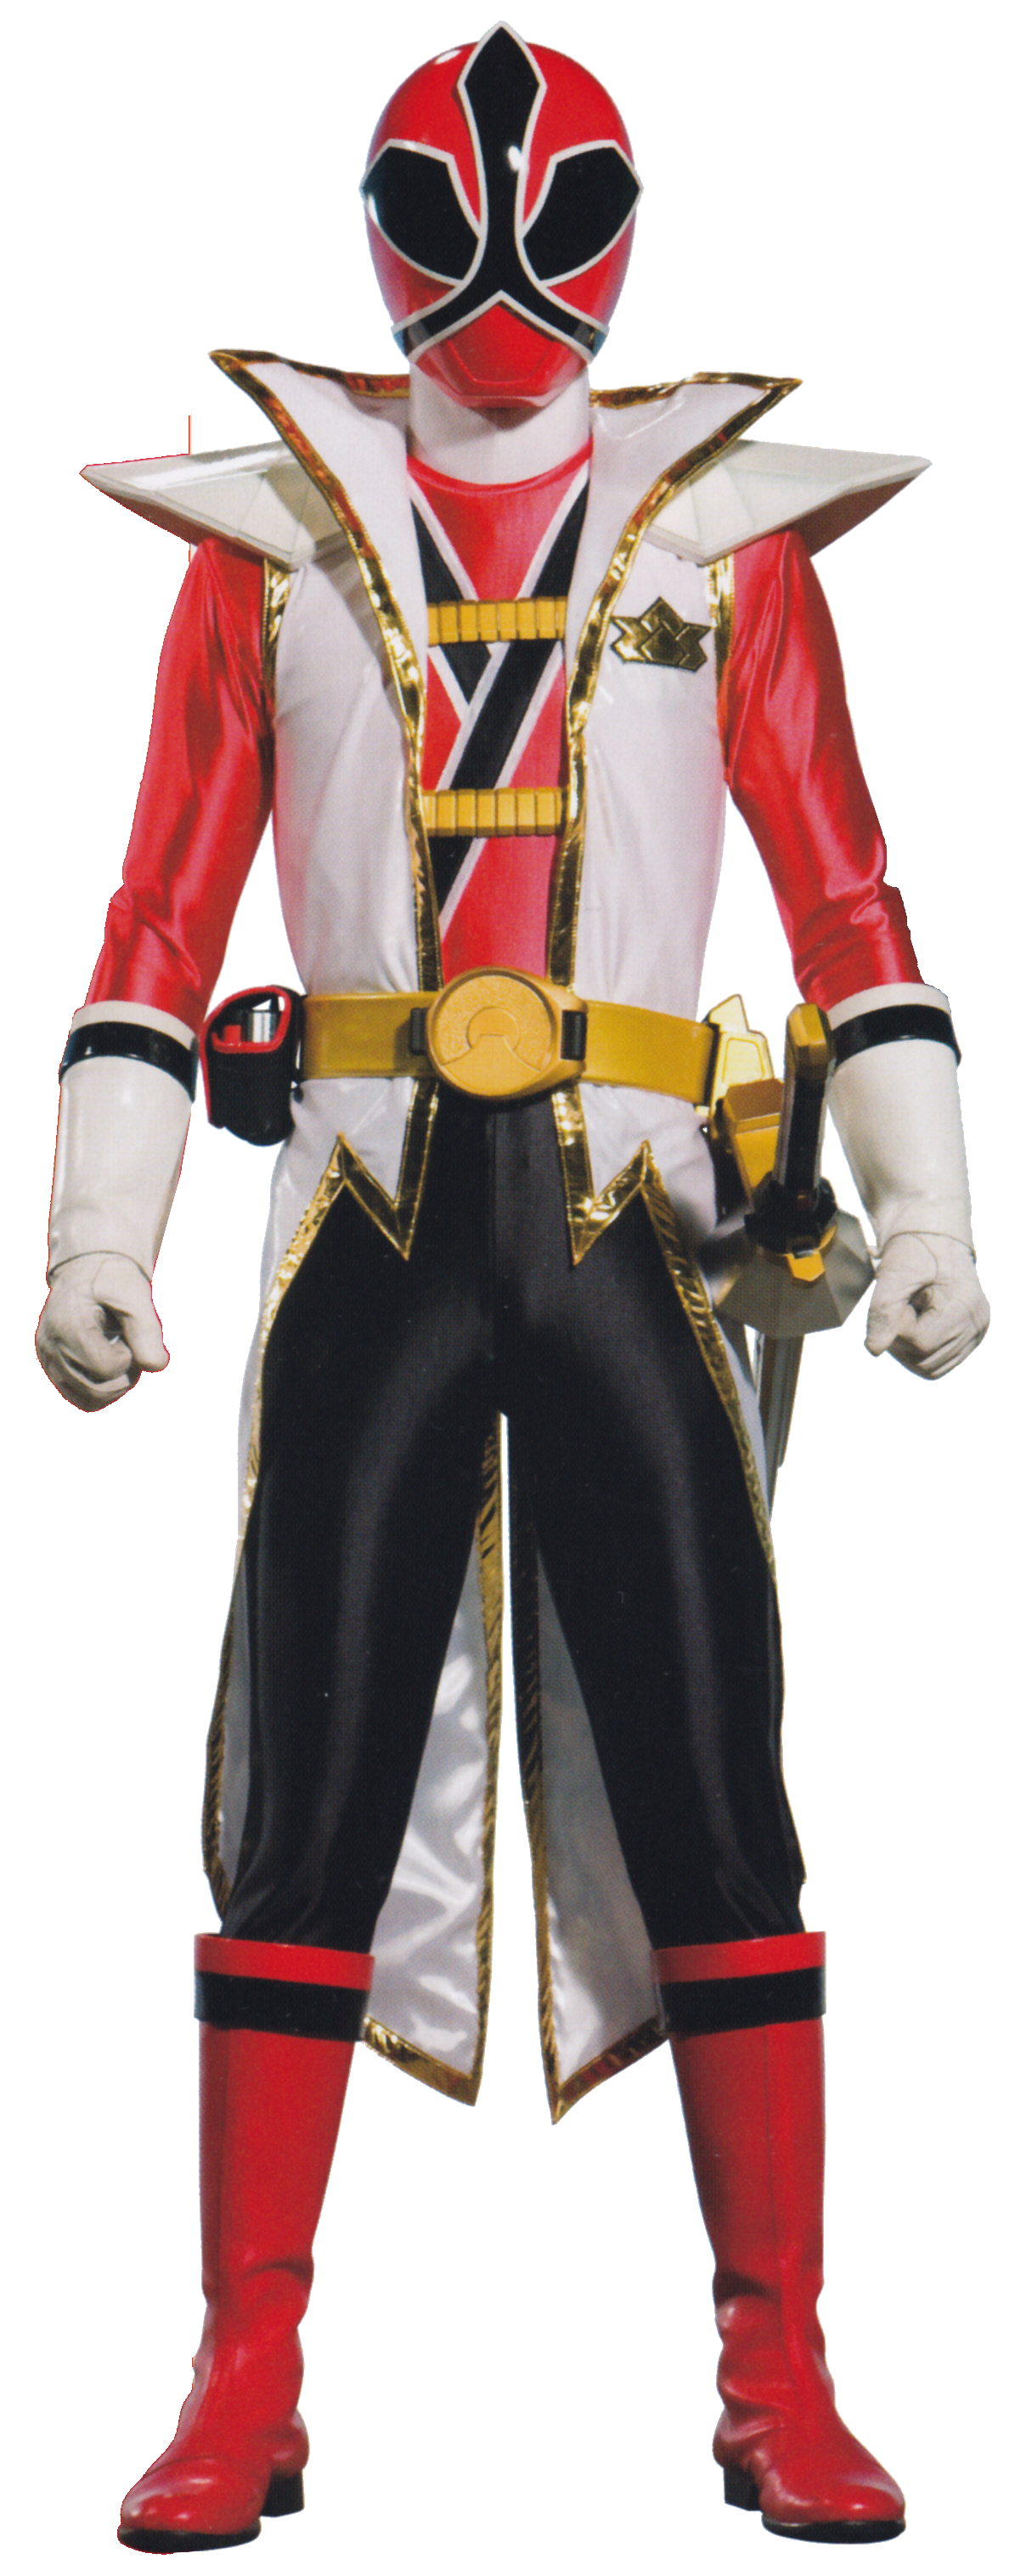 i searched for power rangers super samurai red ranger